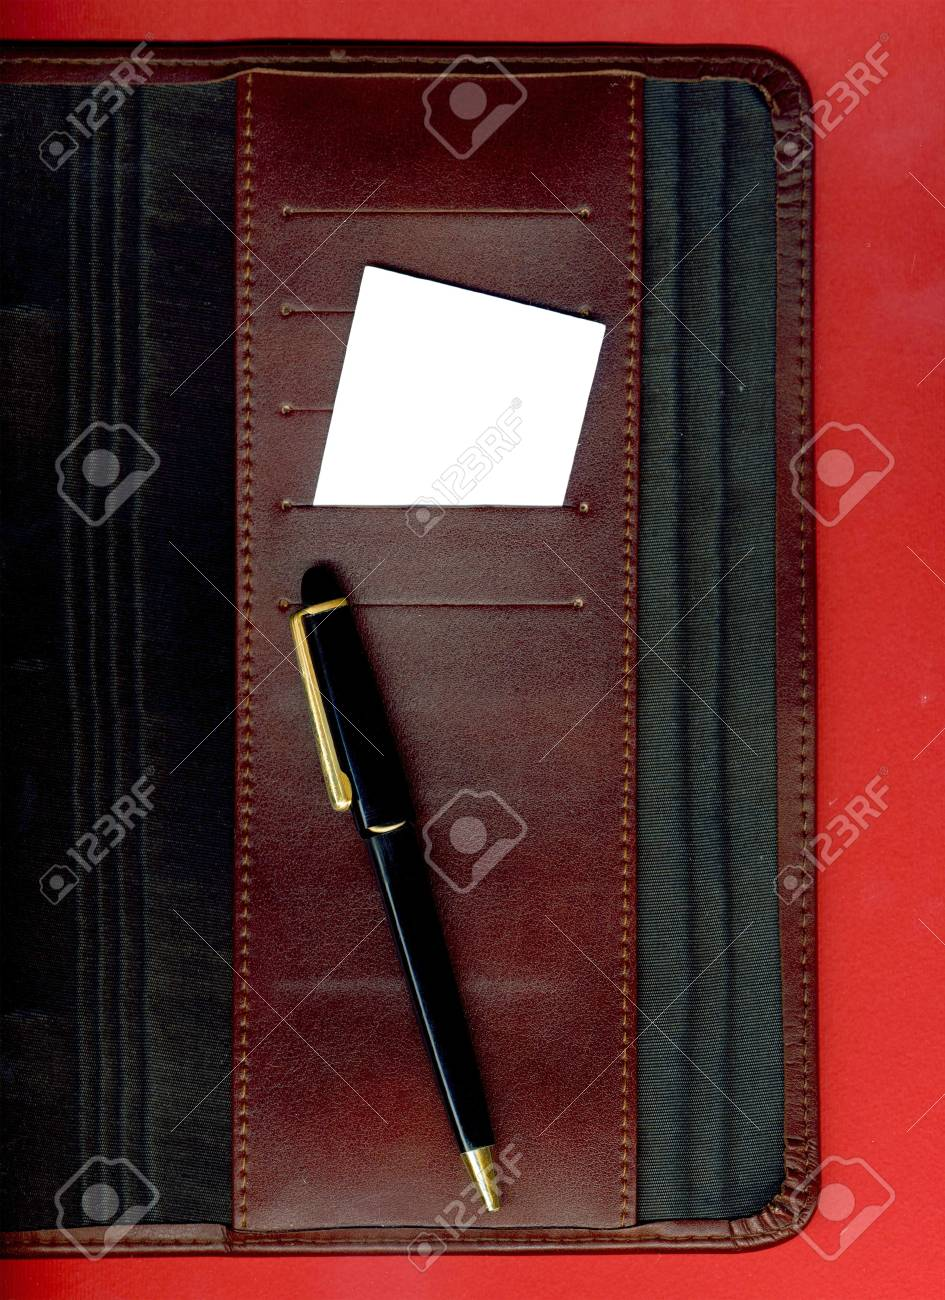 Image of a business card and pen placed on the agenda Stock Photo - 13565350